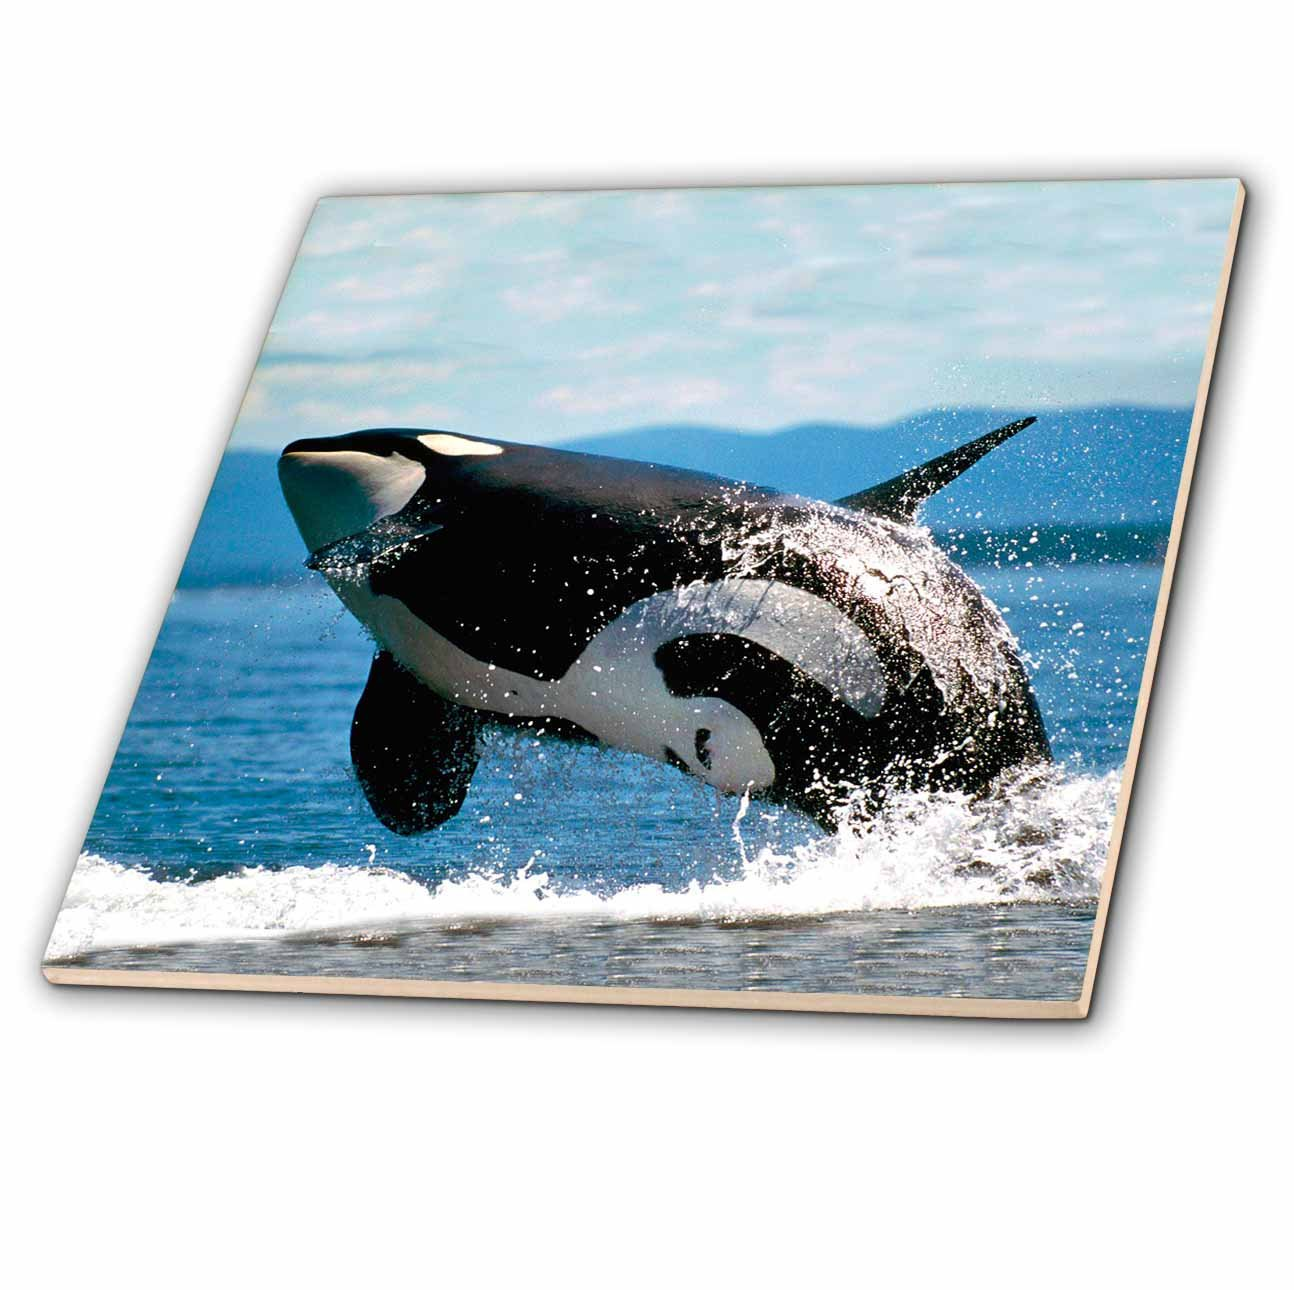 3drose Ct 2545 4 Killer Whale Airbourne Ceramic Tile 12 Inch Tools Home Improvement Building Materials